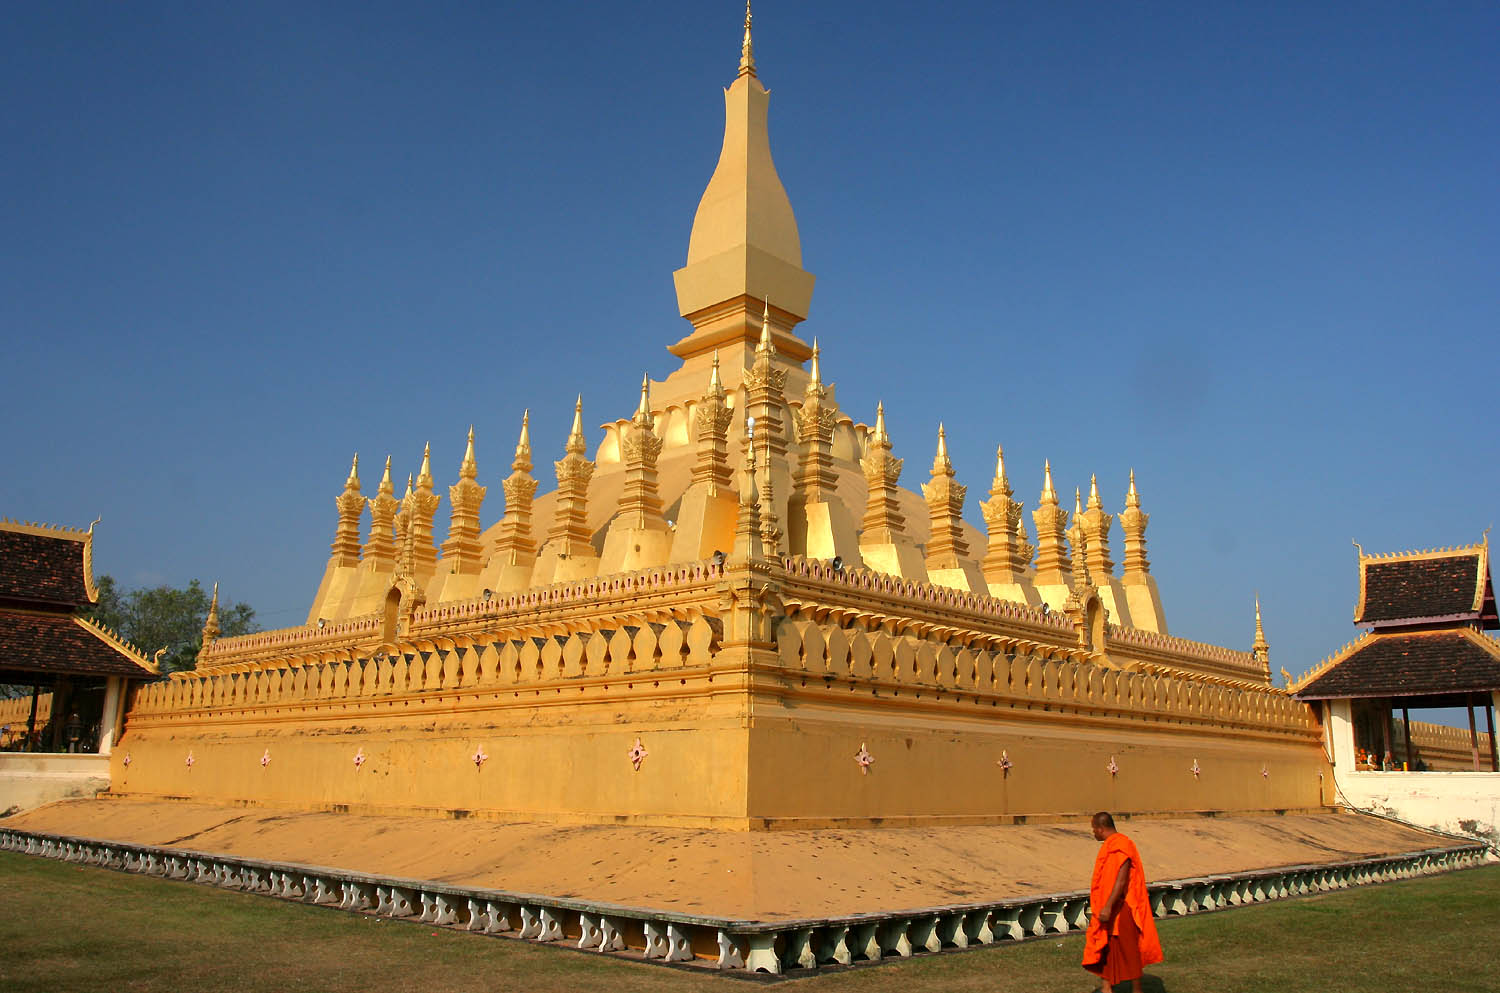 LAOS CLASSIC TOUR 5 DAYS 4 NIGHTS from 264 USD/PERSON only